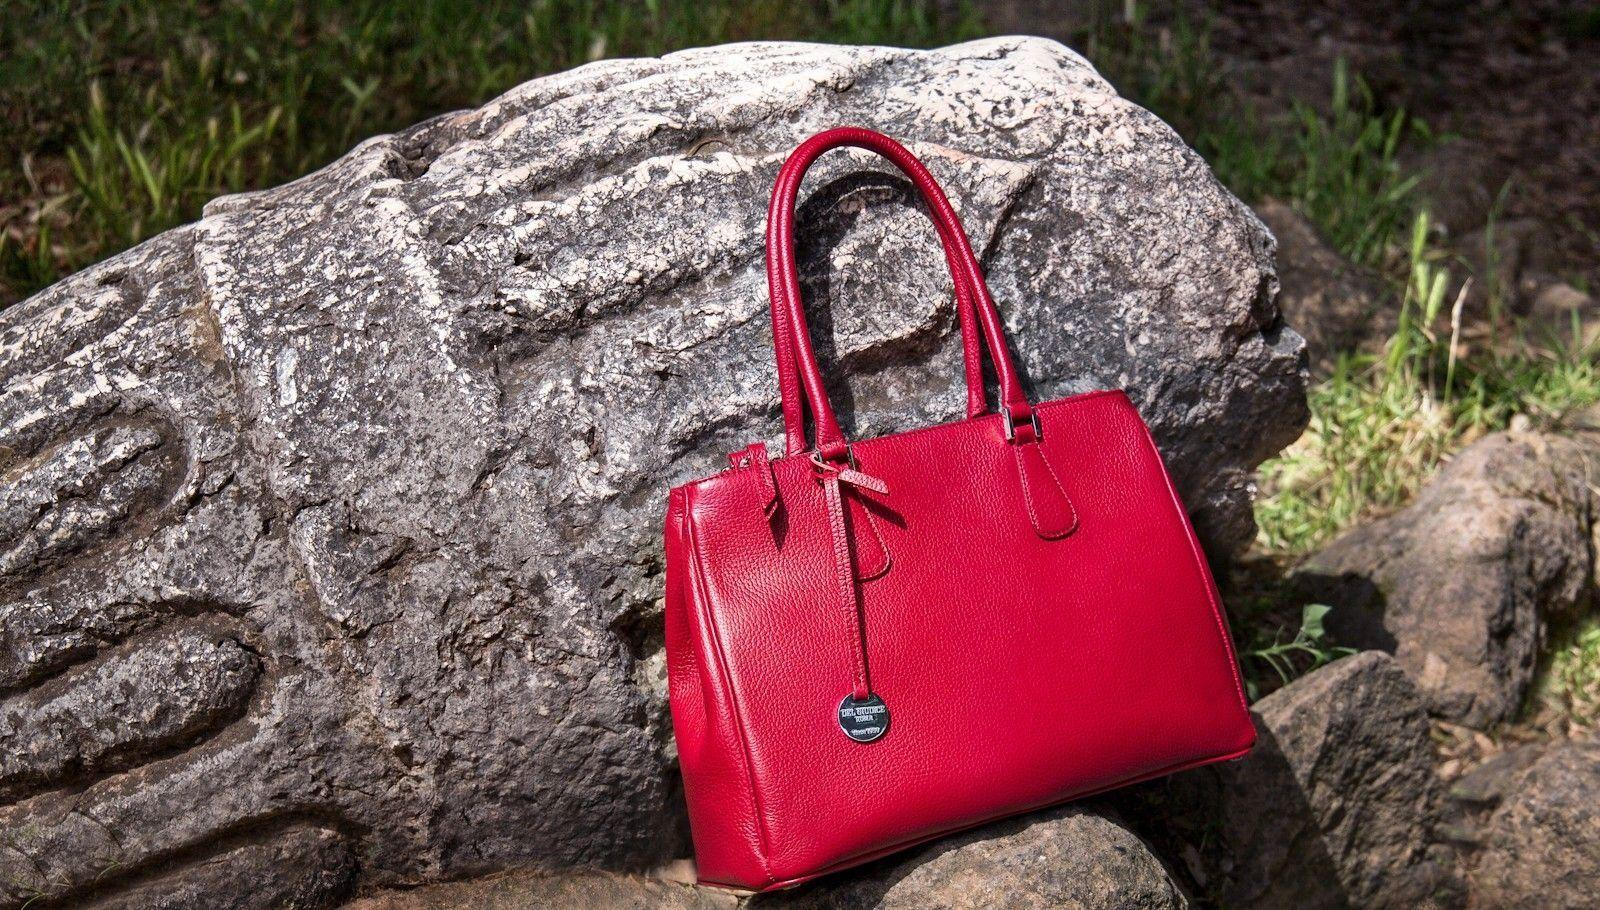 Italian leather bag - Patrizia